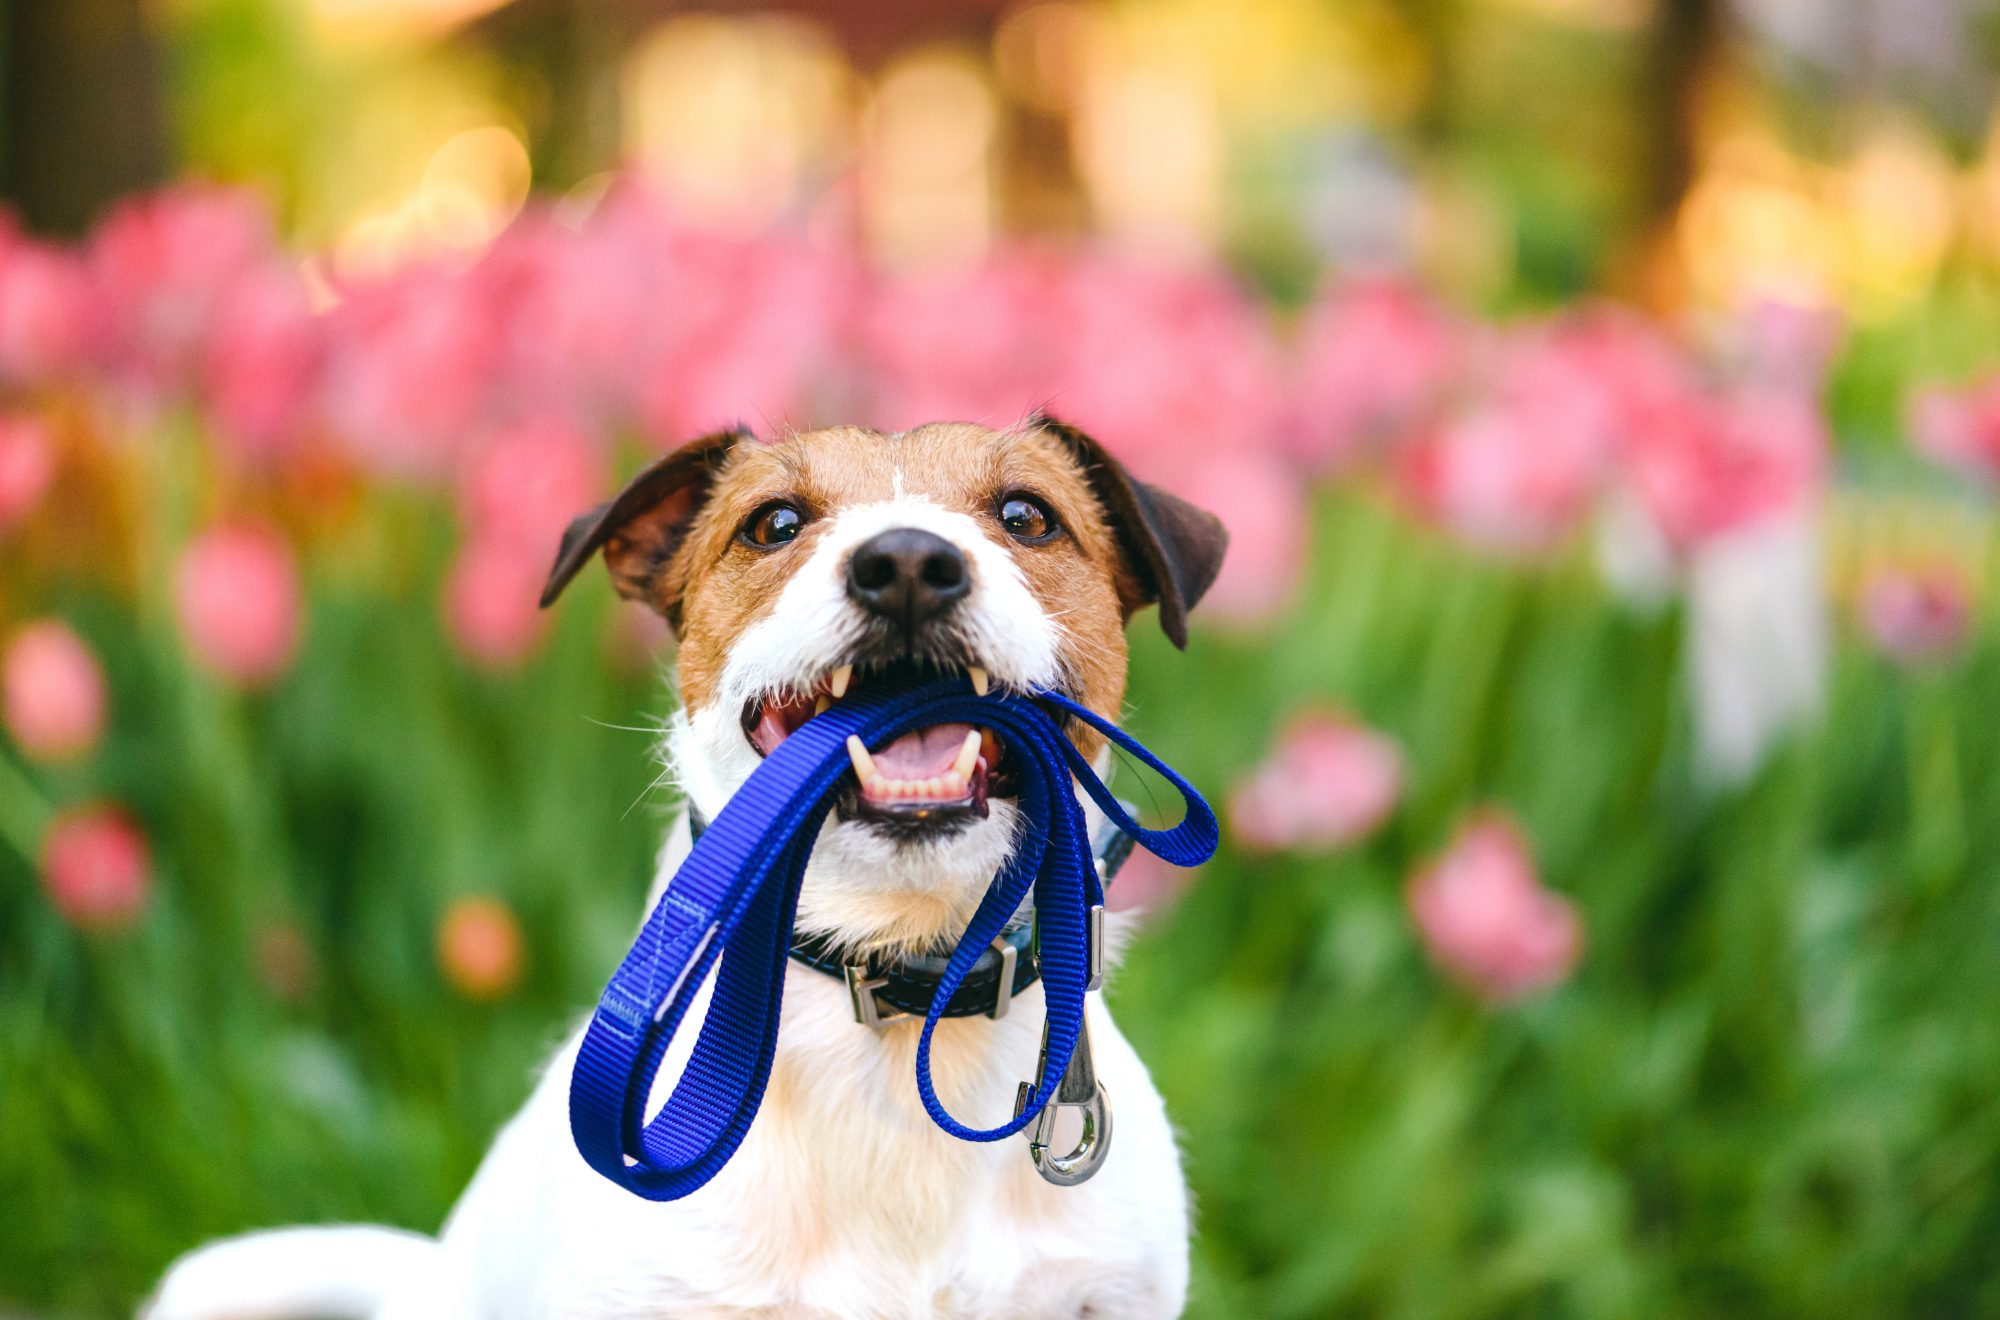 Terrier Dog with Leash in Mouth